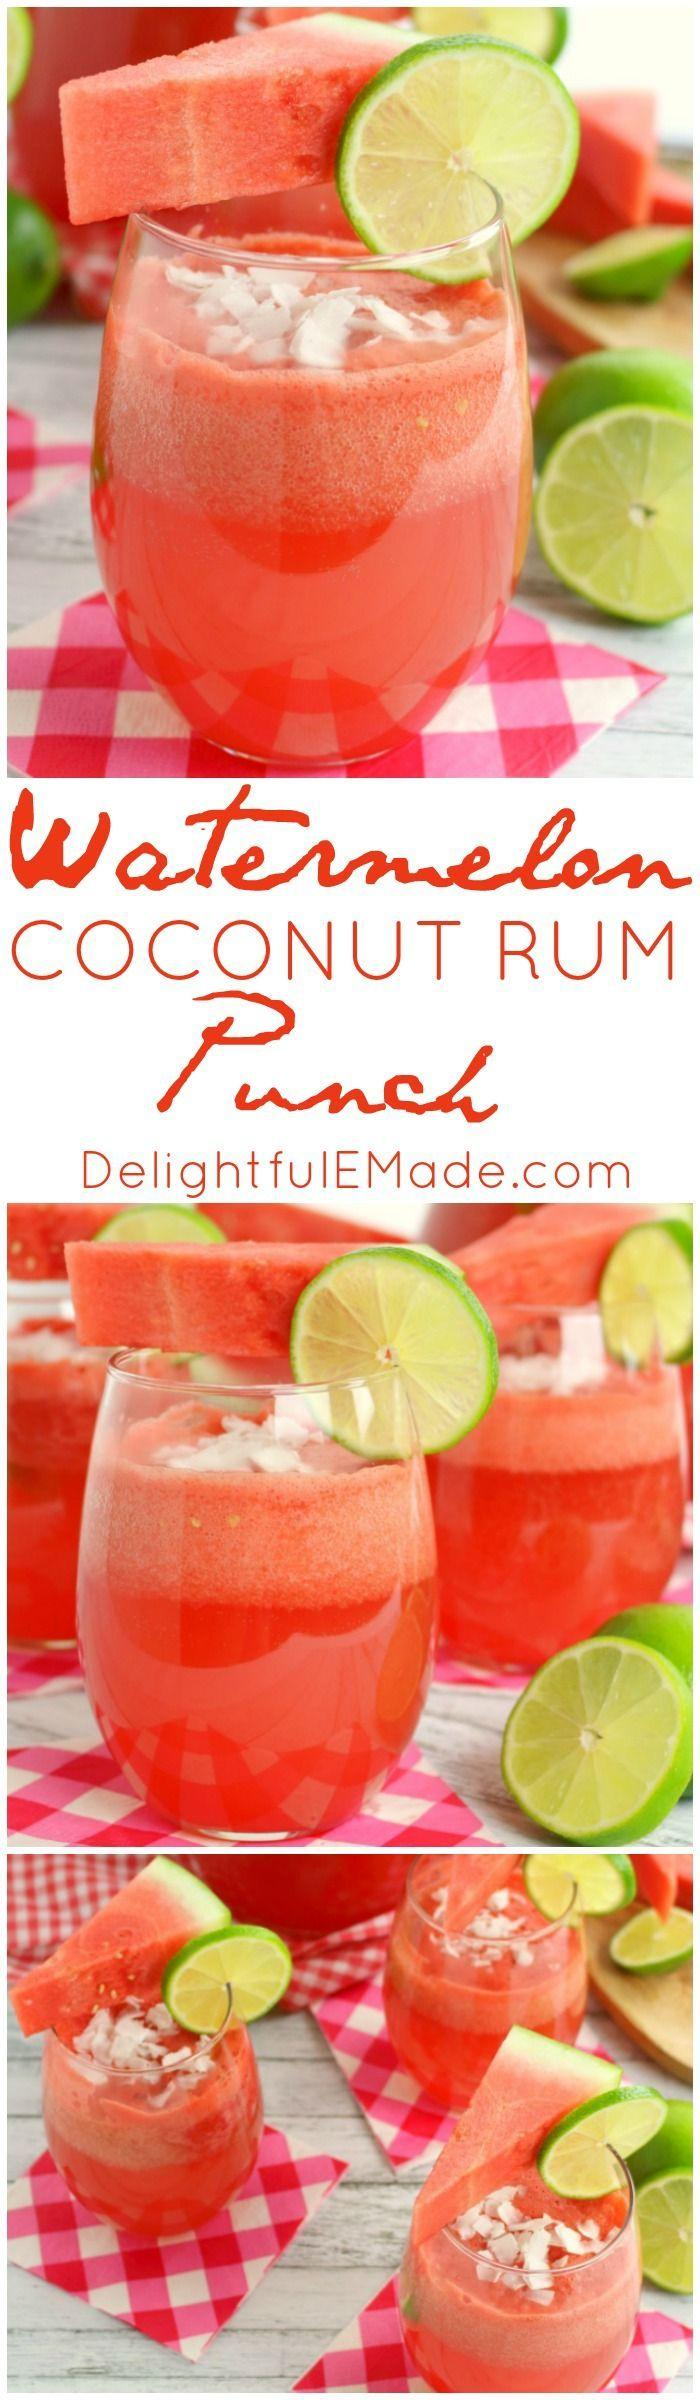 Wedding - Watermelon Coconut Rum Punch